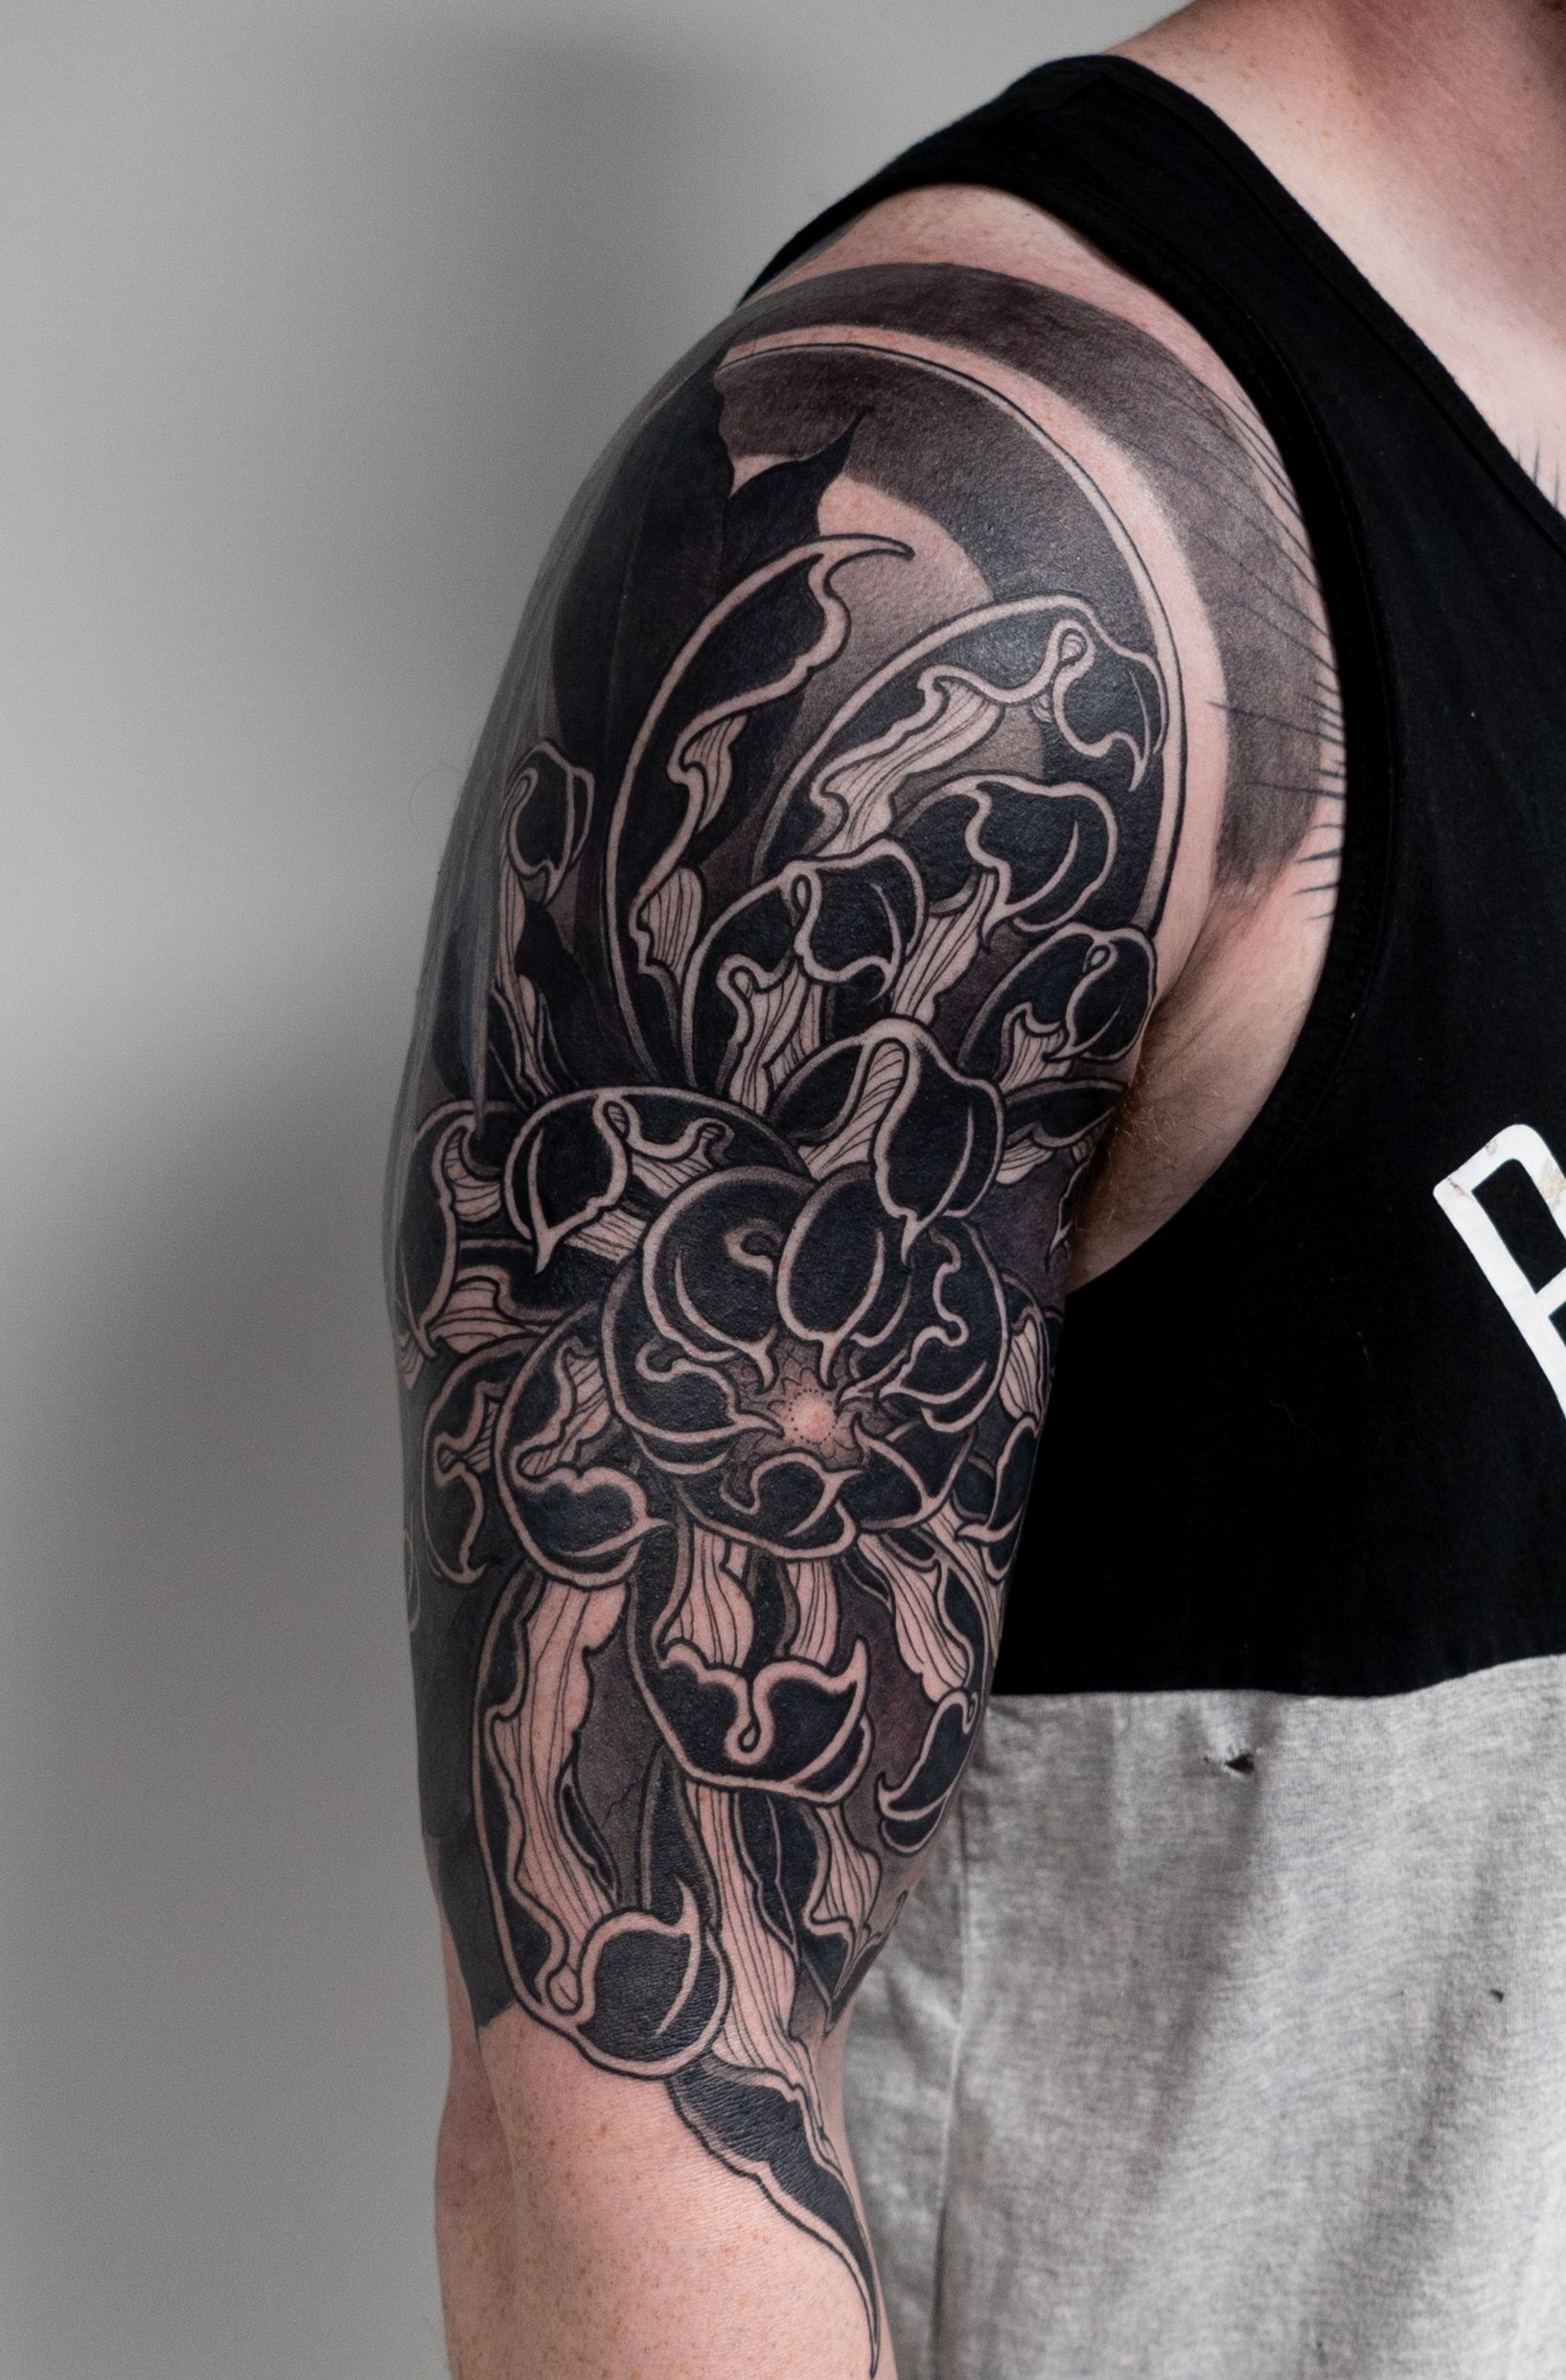 A Chrysanthemum Displayed In Black Grey Tattoo Work Tattoos Tattooart Tattooer Tattoo Tattooartist Tat Tattoos Black And Grey Tattoos Tattoo Magazines